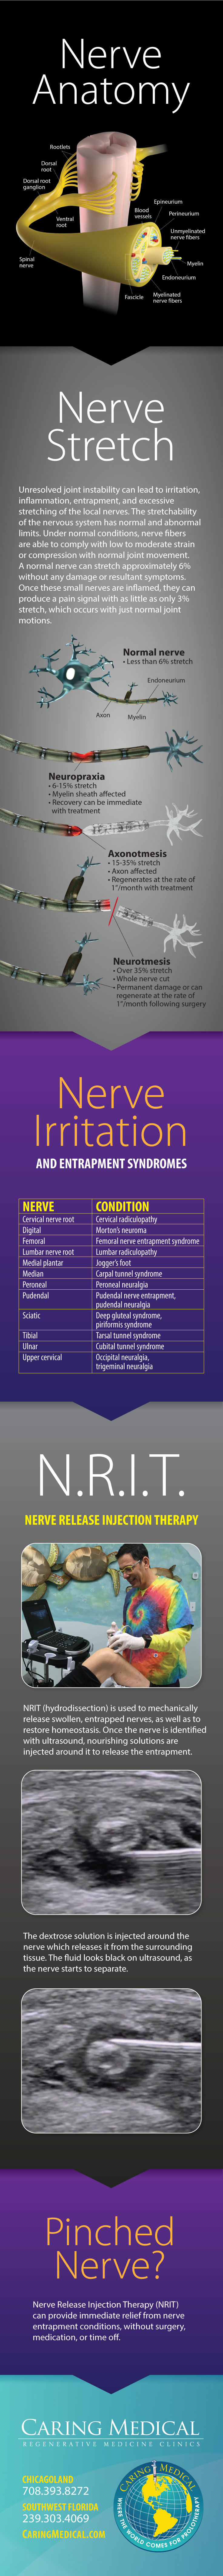 Nerve Release Injection Therapy